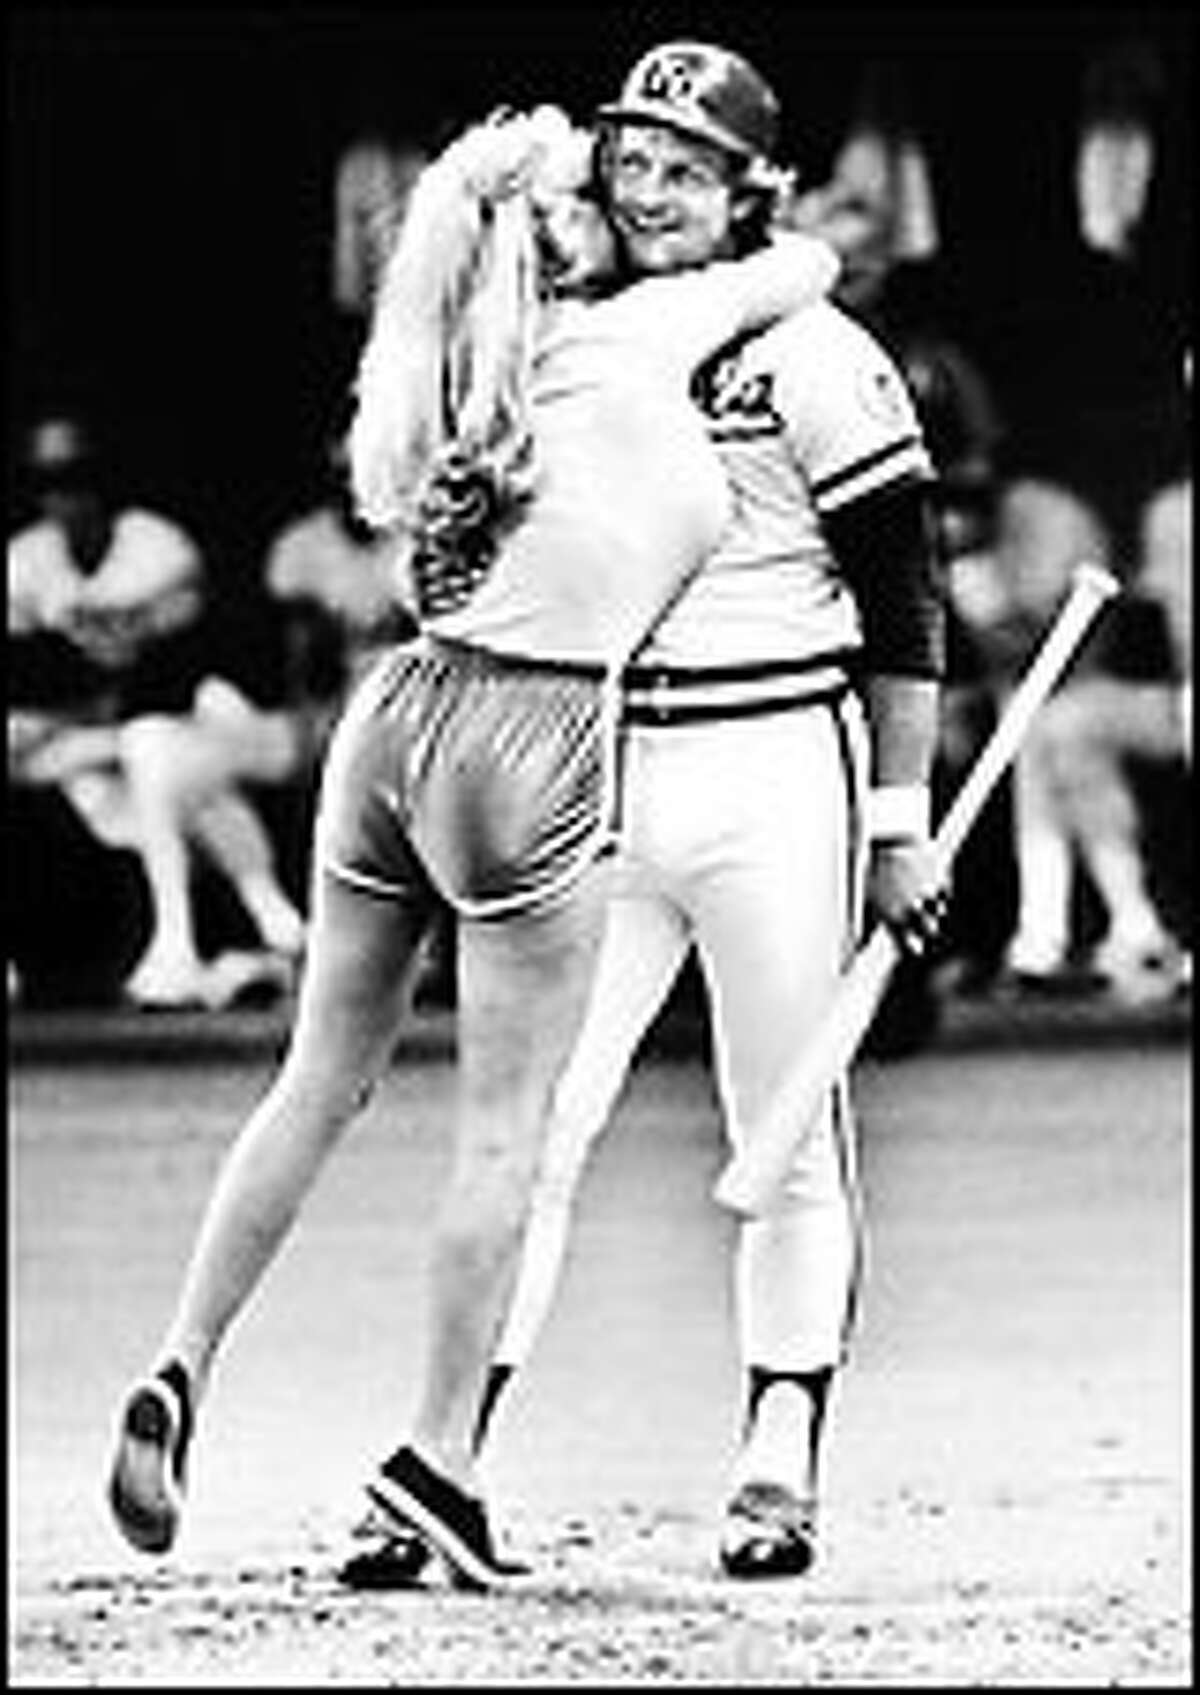 Morganna latches on to George Brett during the 1979 All-Star Game in the Kingdome. Click for a larger image